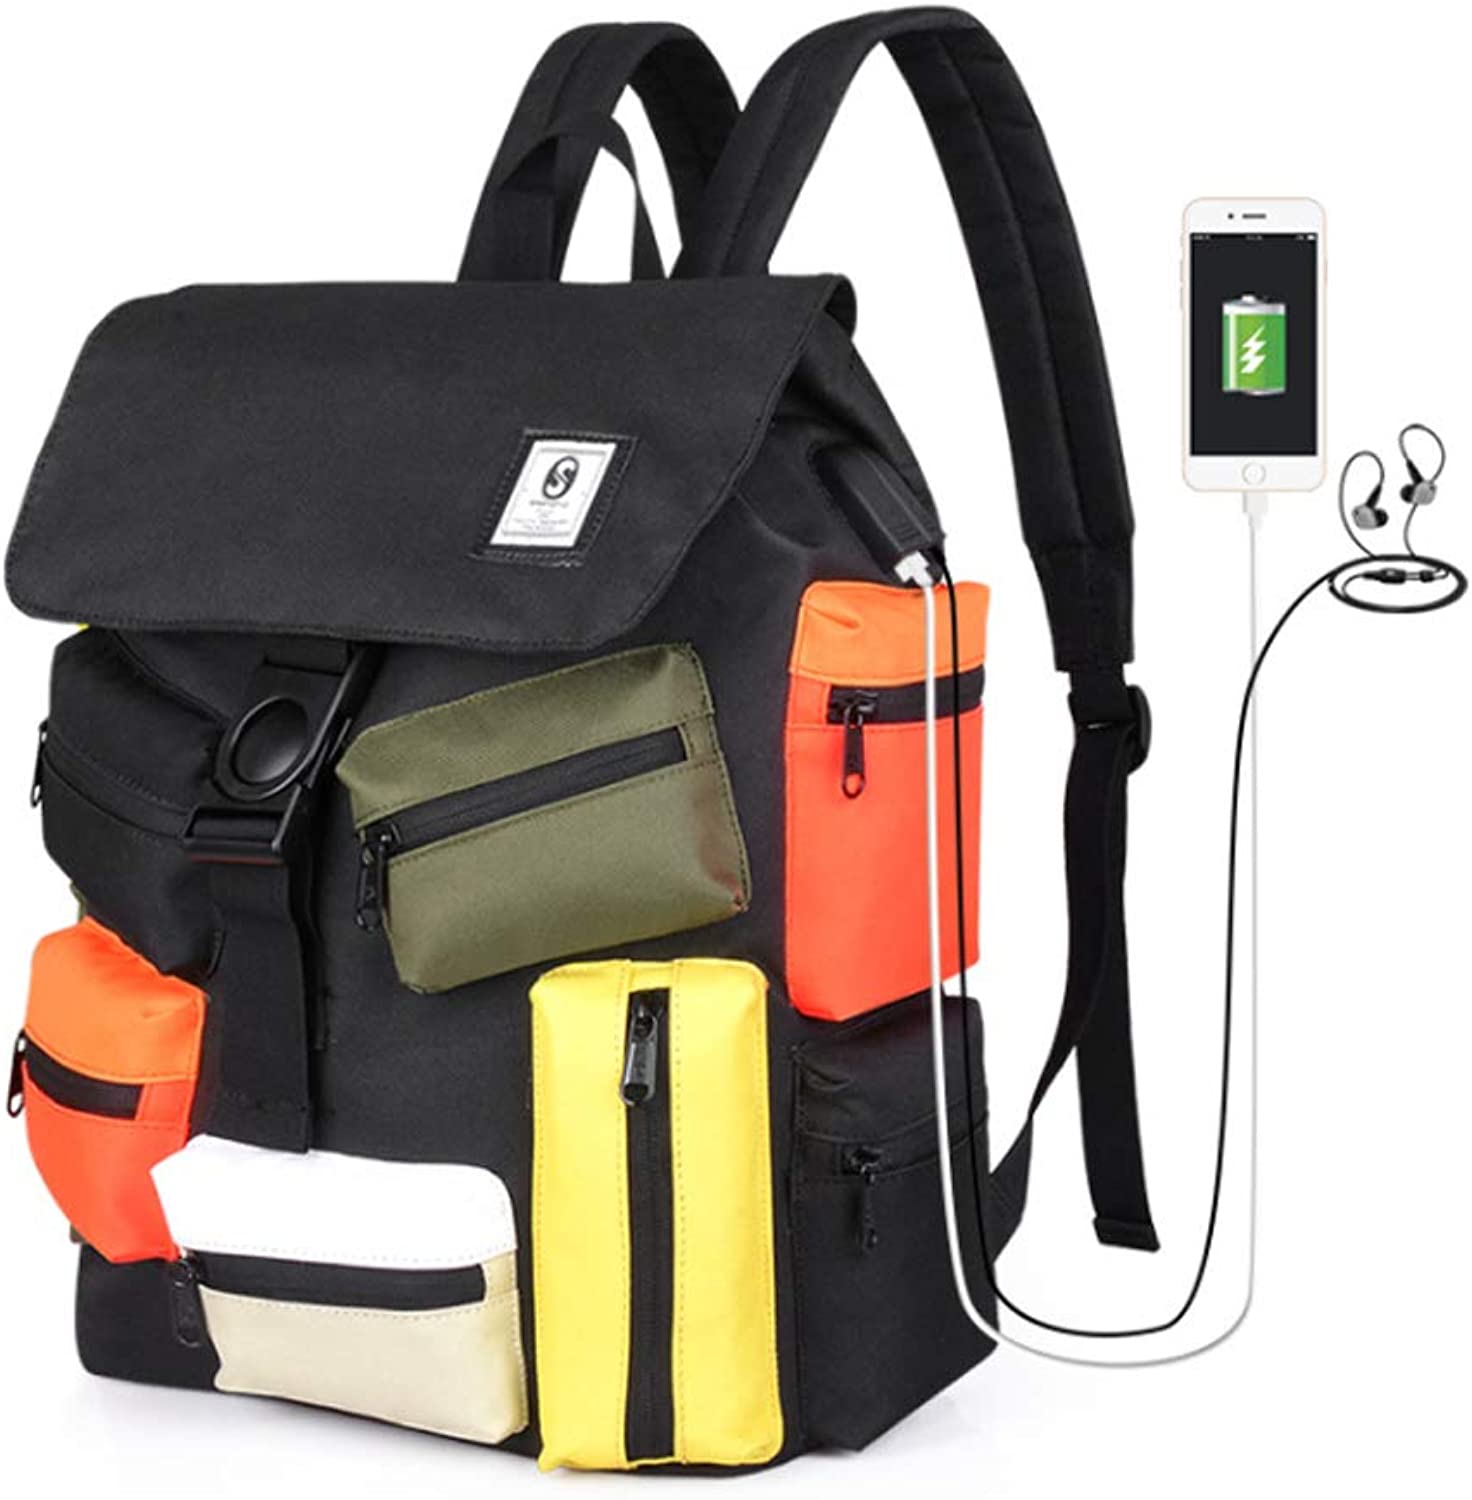 MultiPocket Multicoloured with USB Charging LargeCapacity Recreational Outdoor Backpack